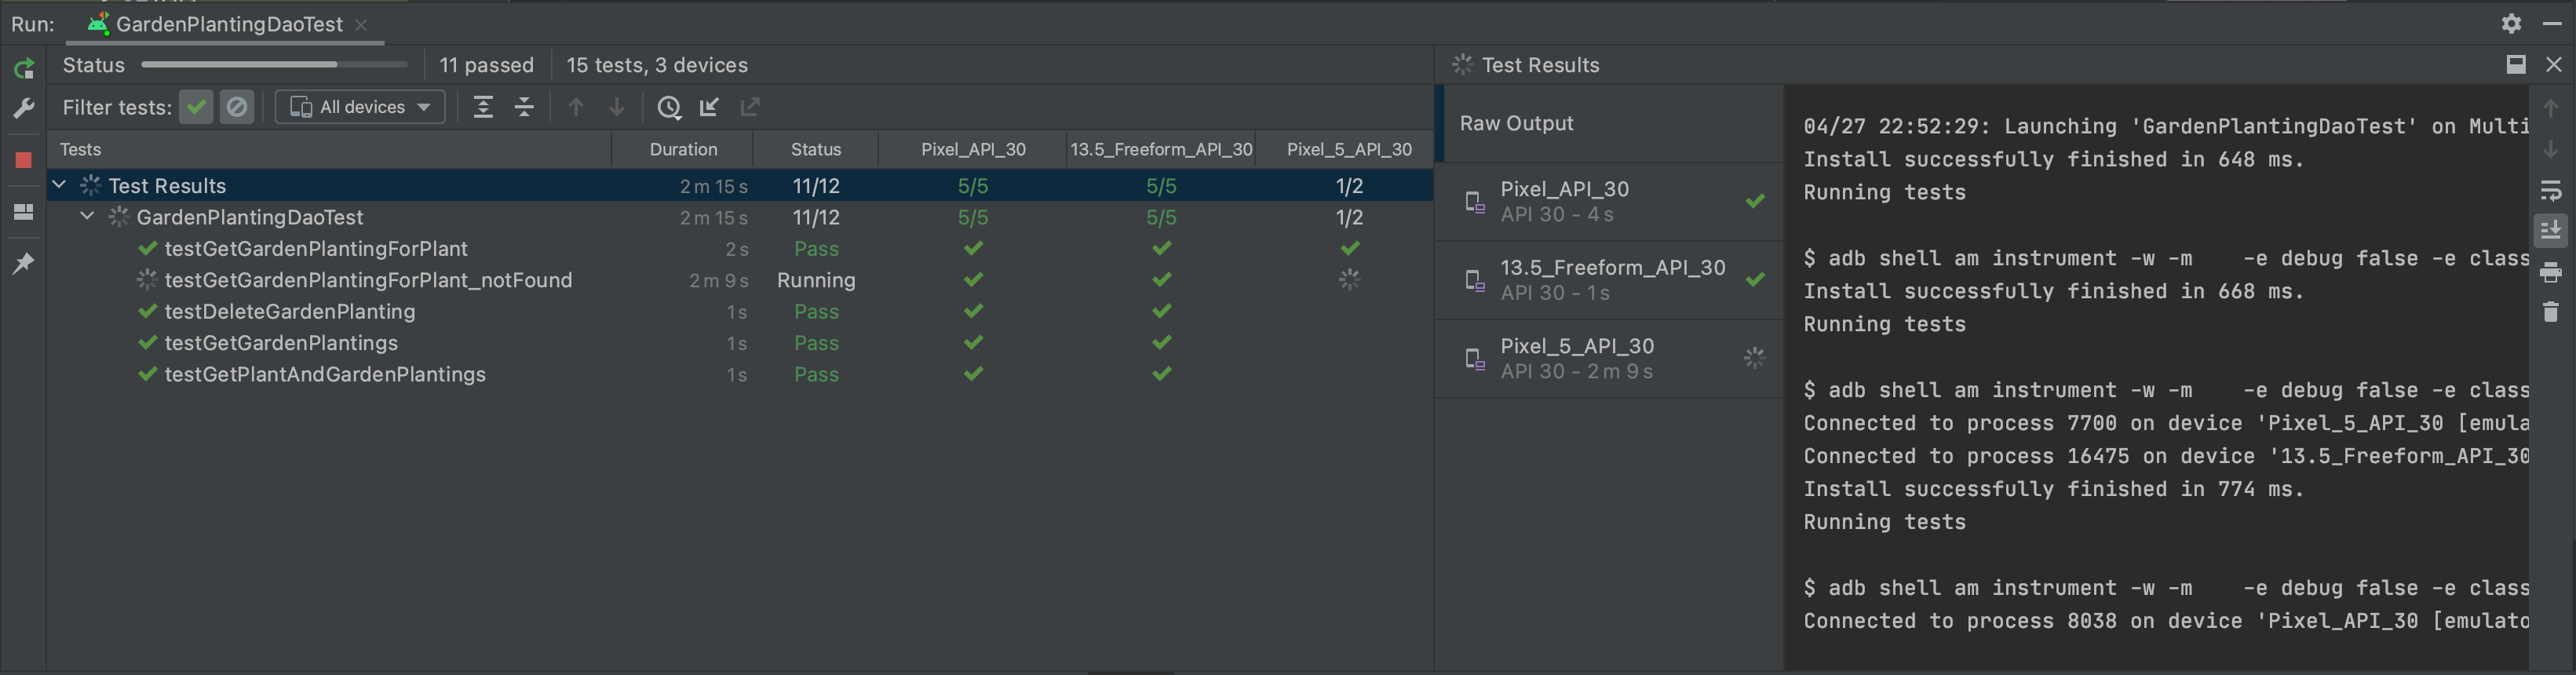 Test matrix running tests across multiple devices in parallel